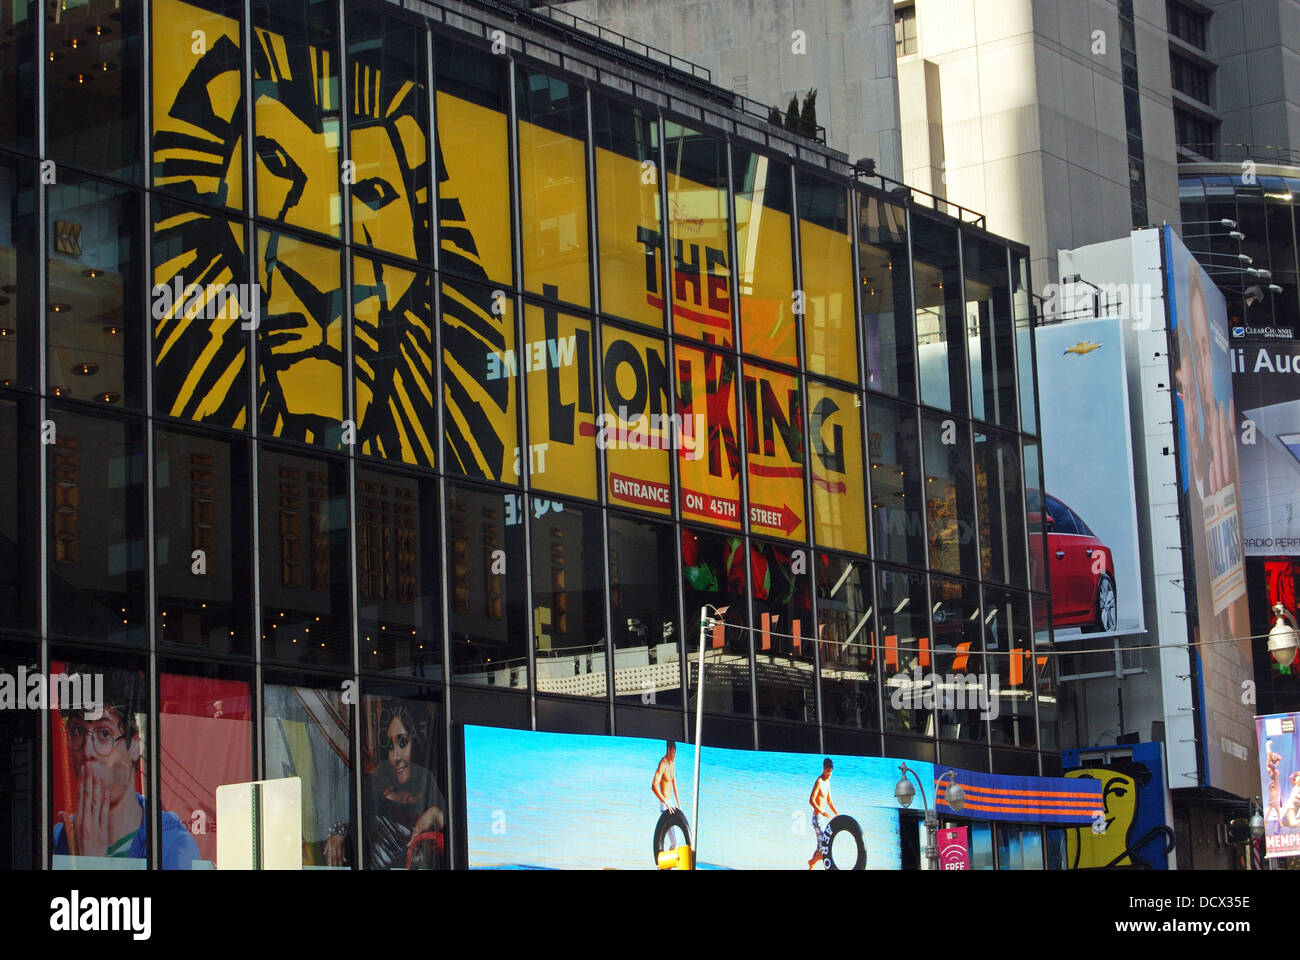 Advertising in Times Square, Manhattan, New York, United States of America. - Stock Image